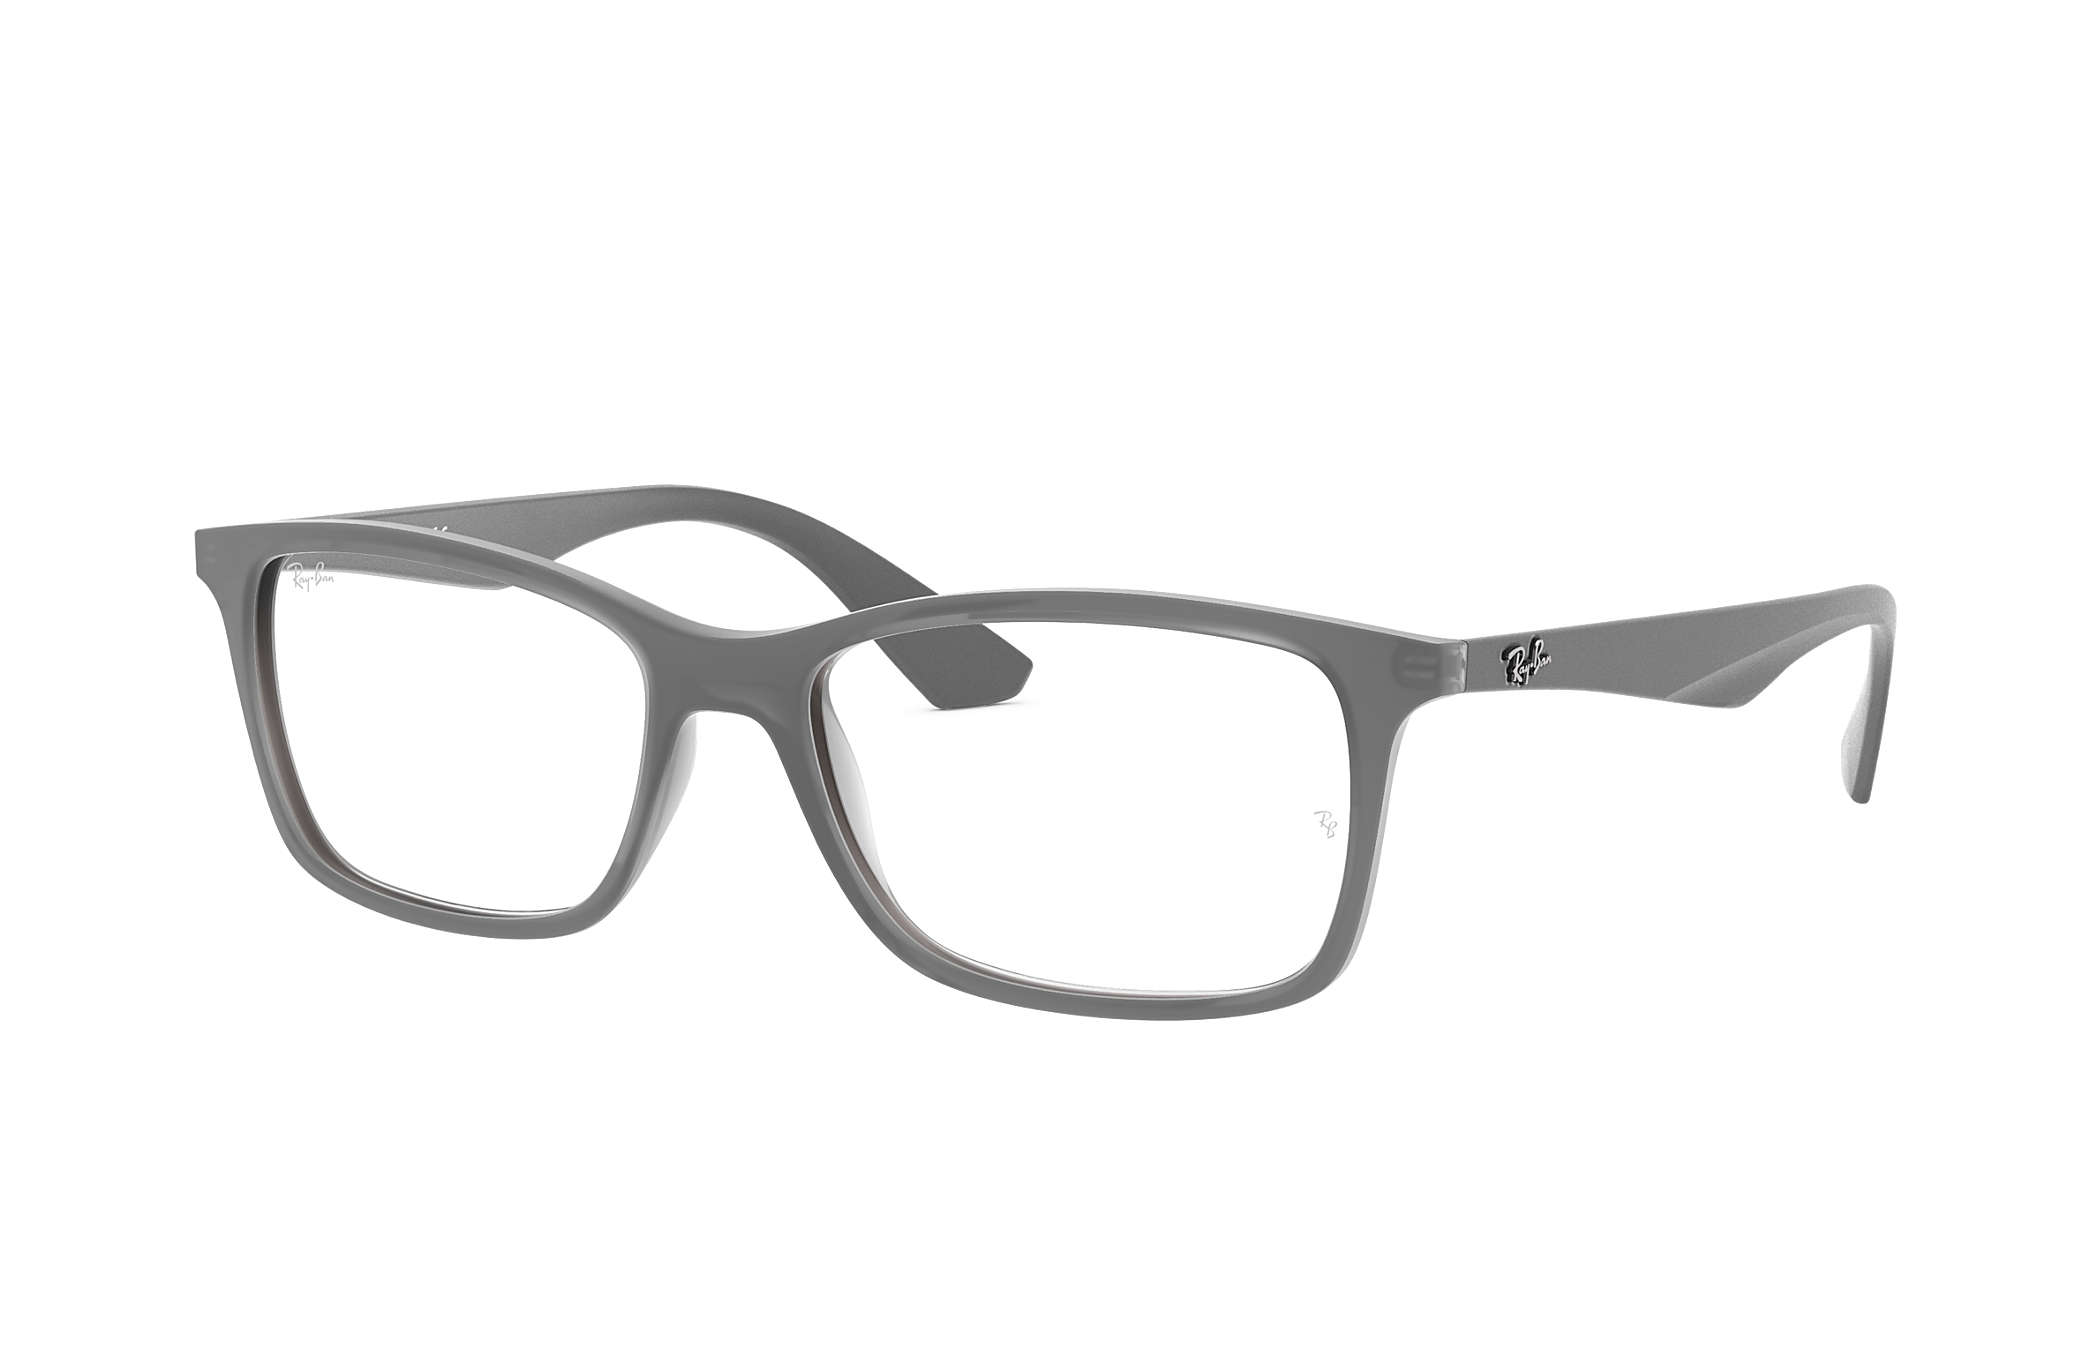 c3181acd8542 Ray-Ban prescription glasses RB7047 Grey - Nylon - 0RX7047548256 ...